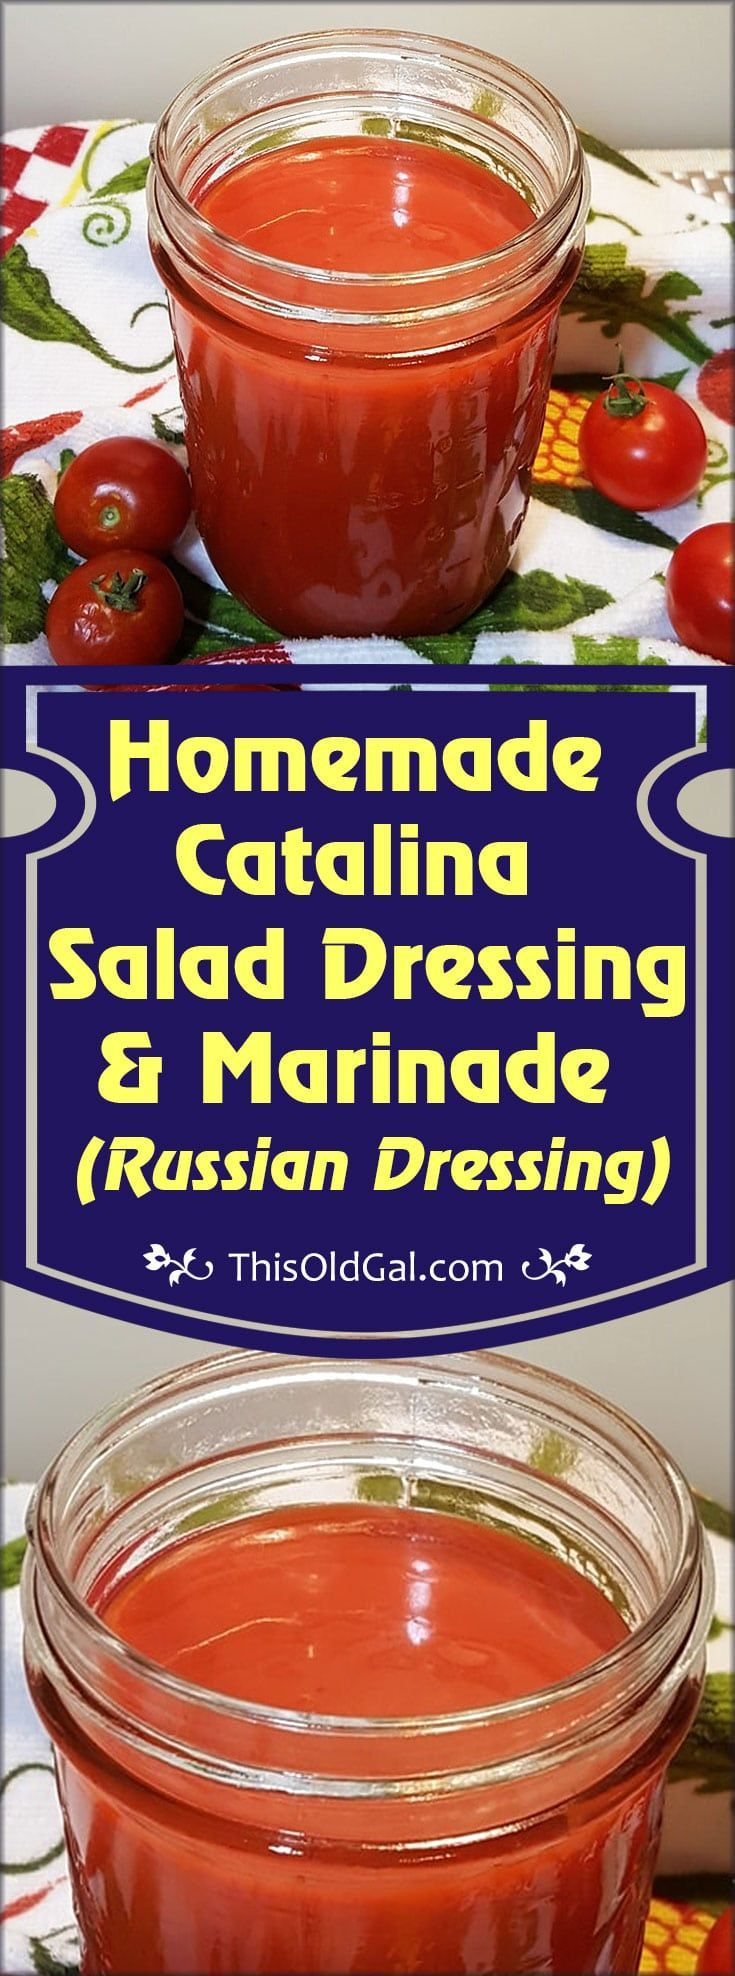 Homemade Catalina Salad Dressing is sweet and tangy; similar to Russian Salad Dressing.  It is also delicious as a marinade and cooking sauce. via @thisoldgalcooks